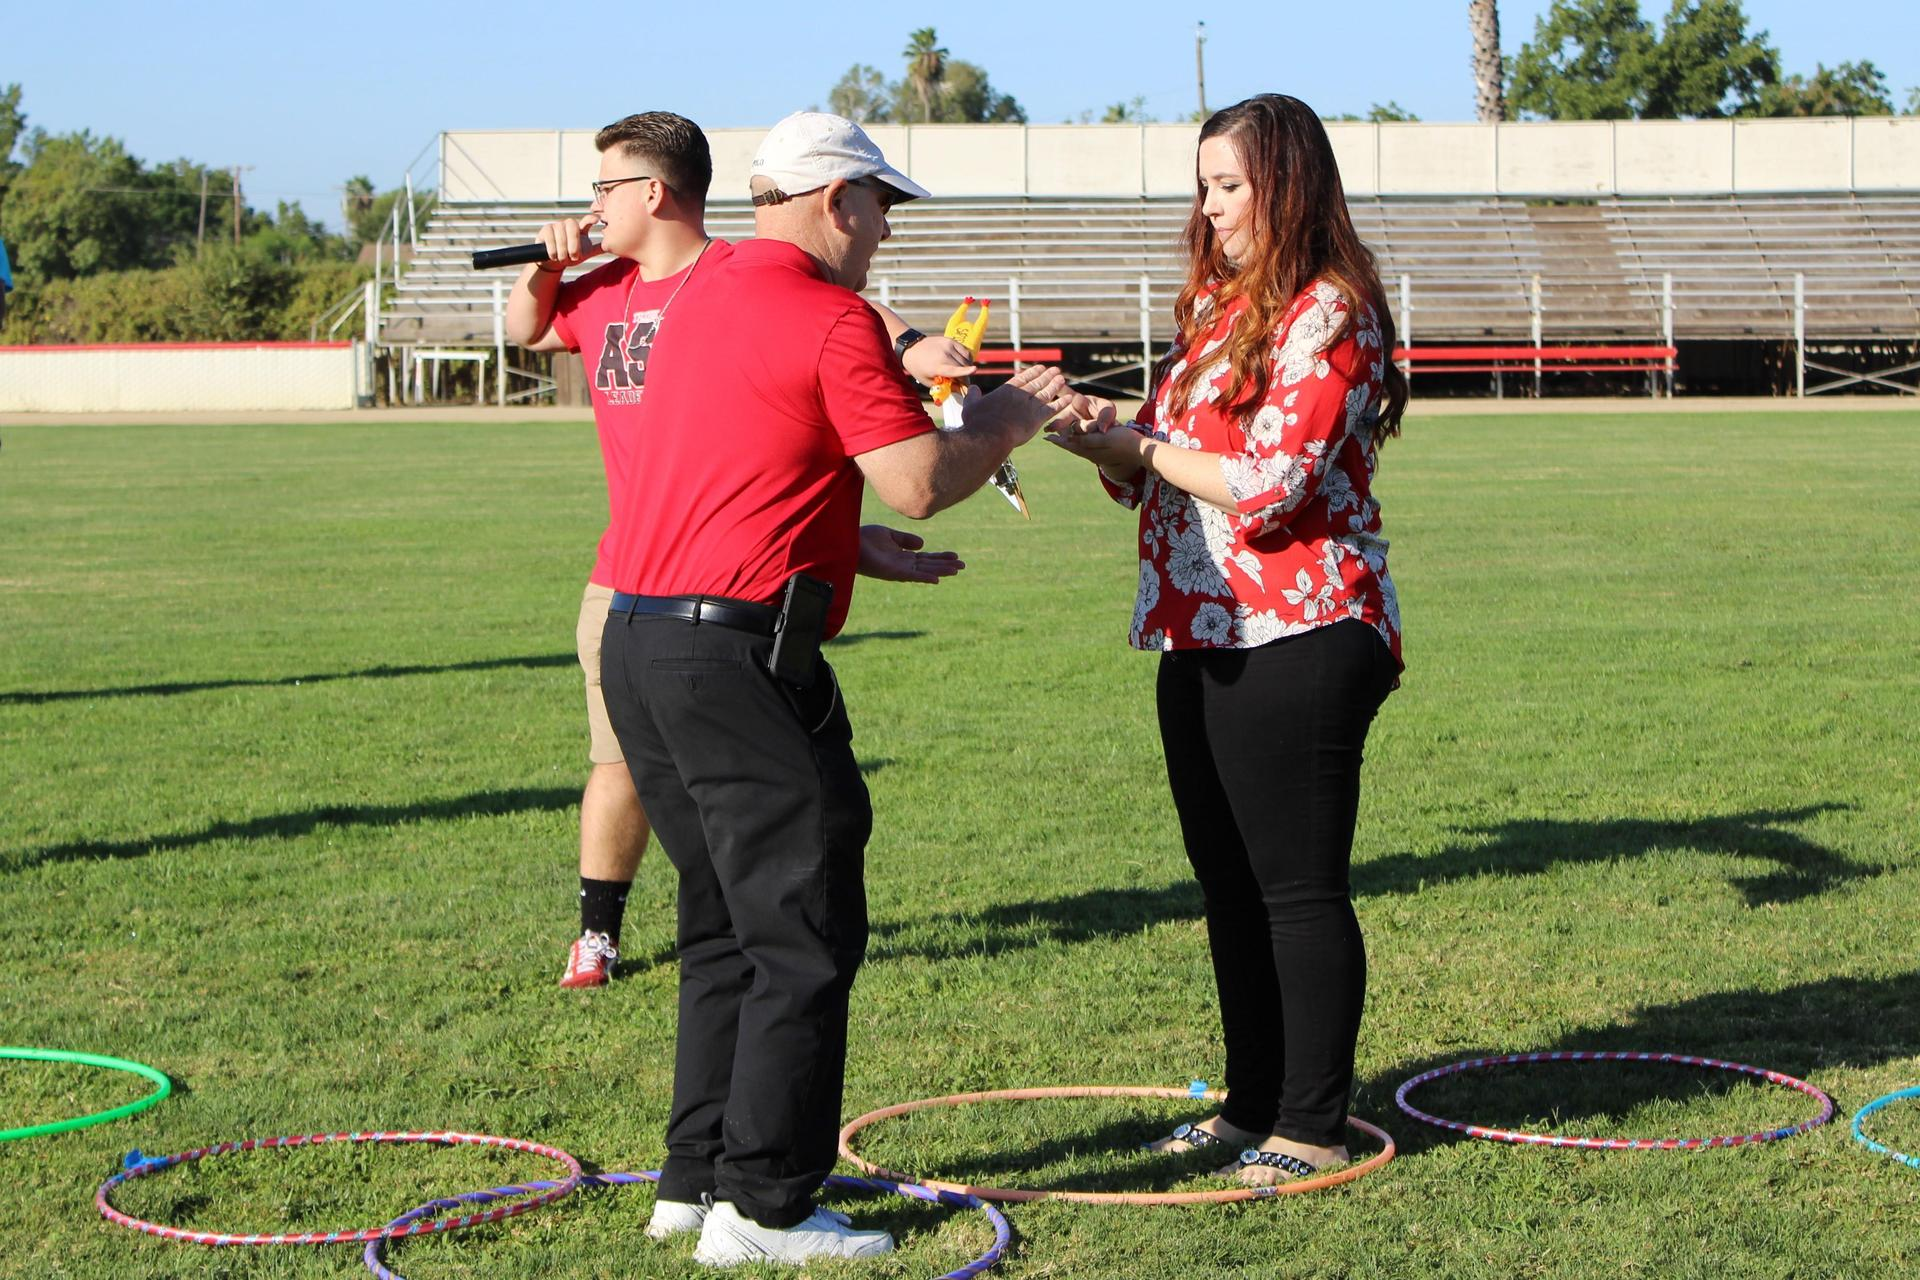 Teachers competing in a rally game